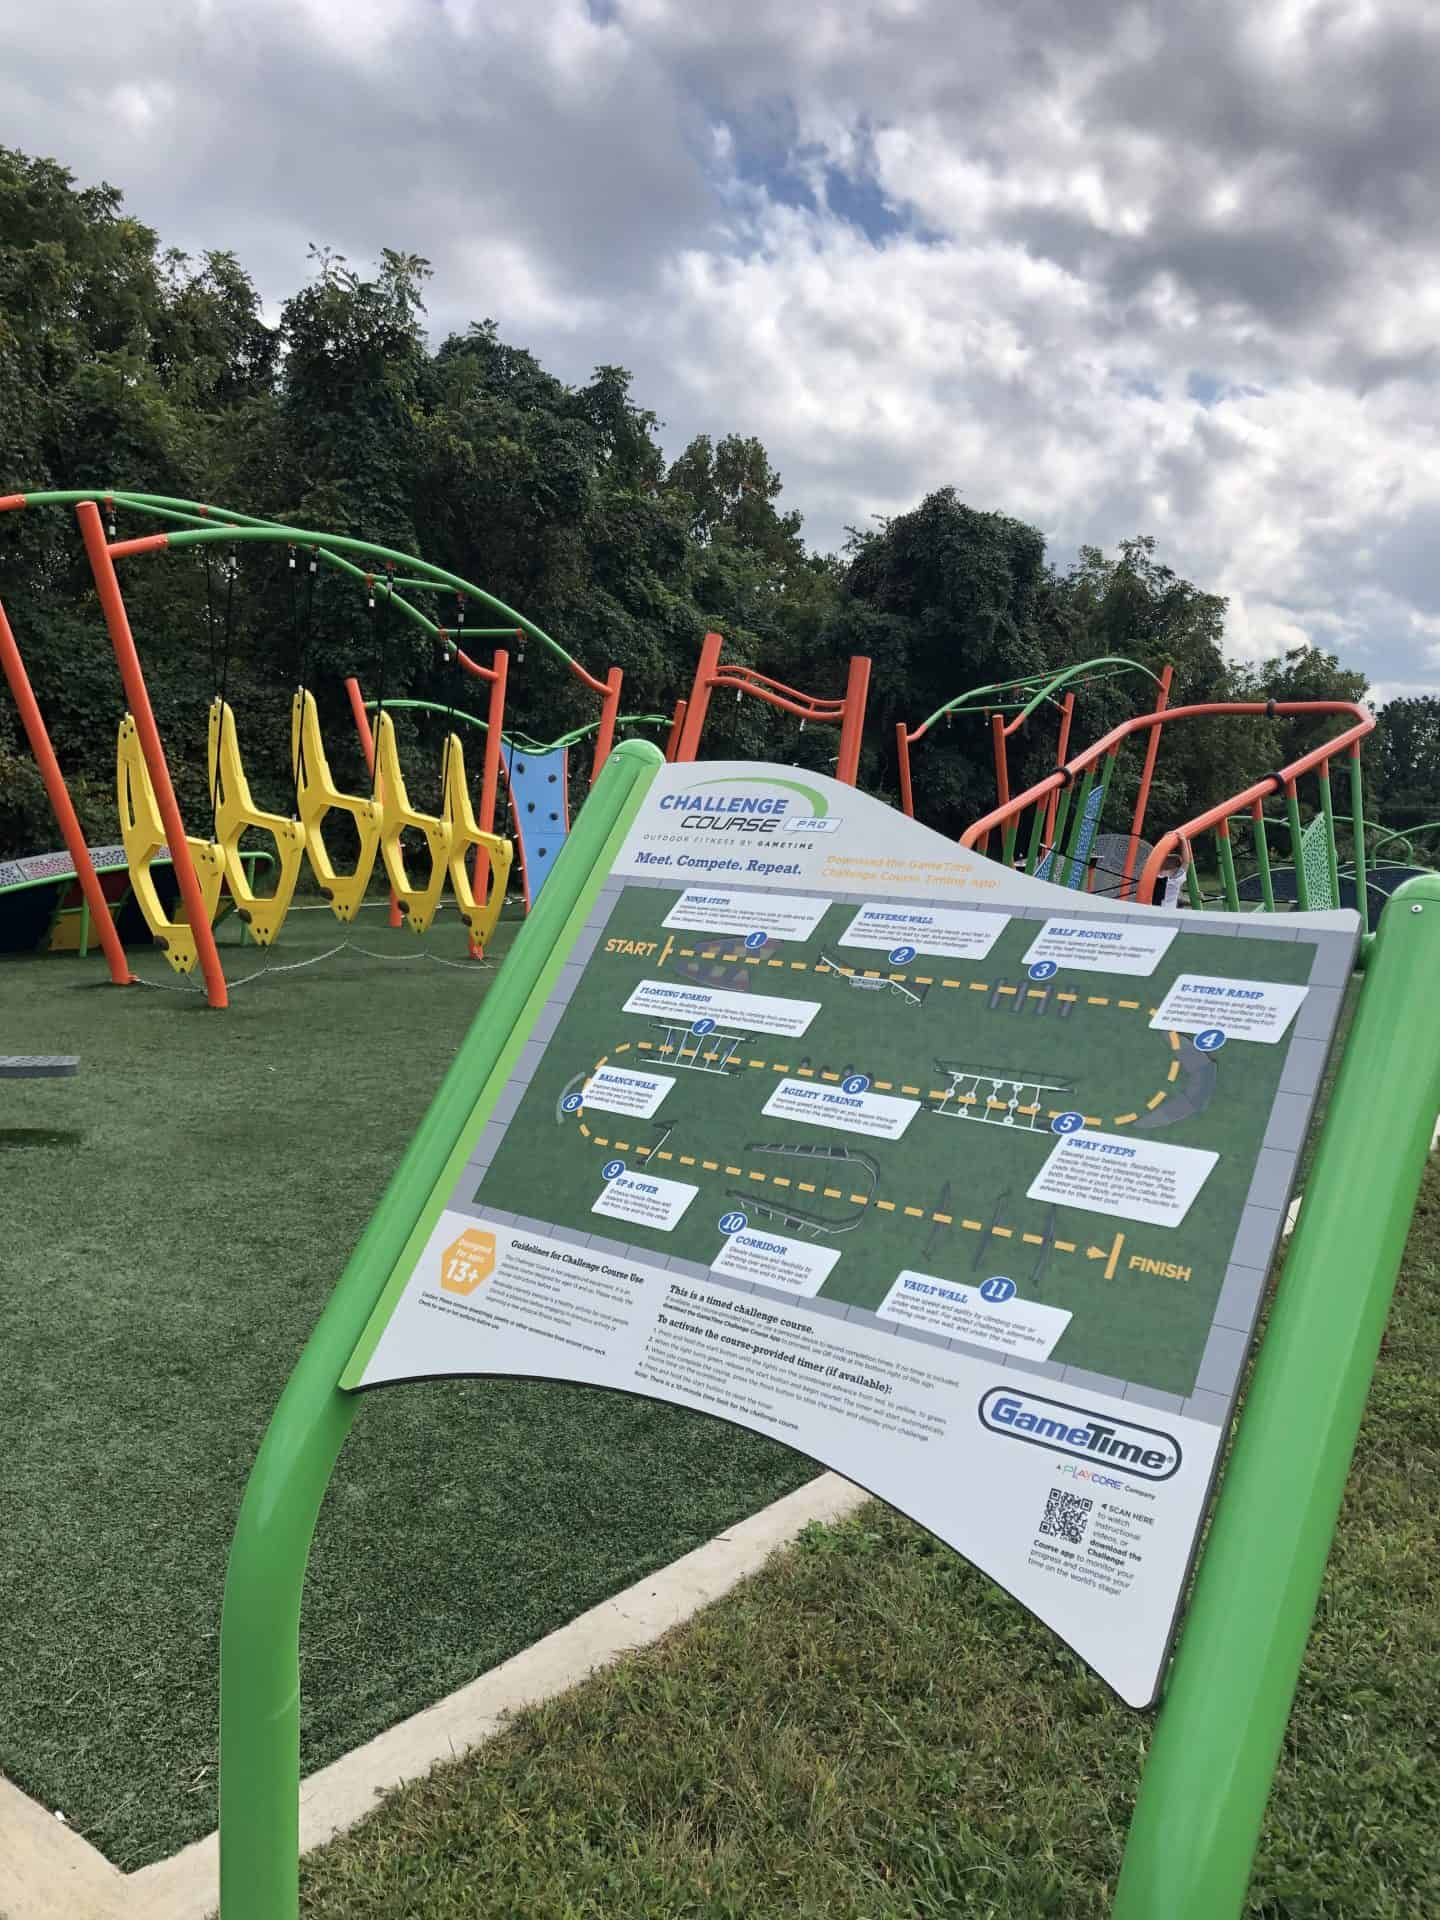 Challenge Course in Burke, one of the best playgrounds in Fairfax